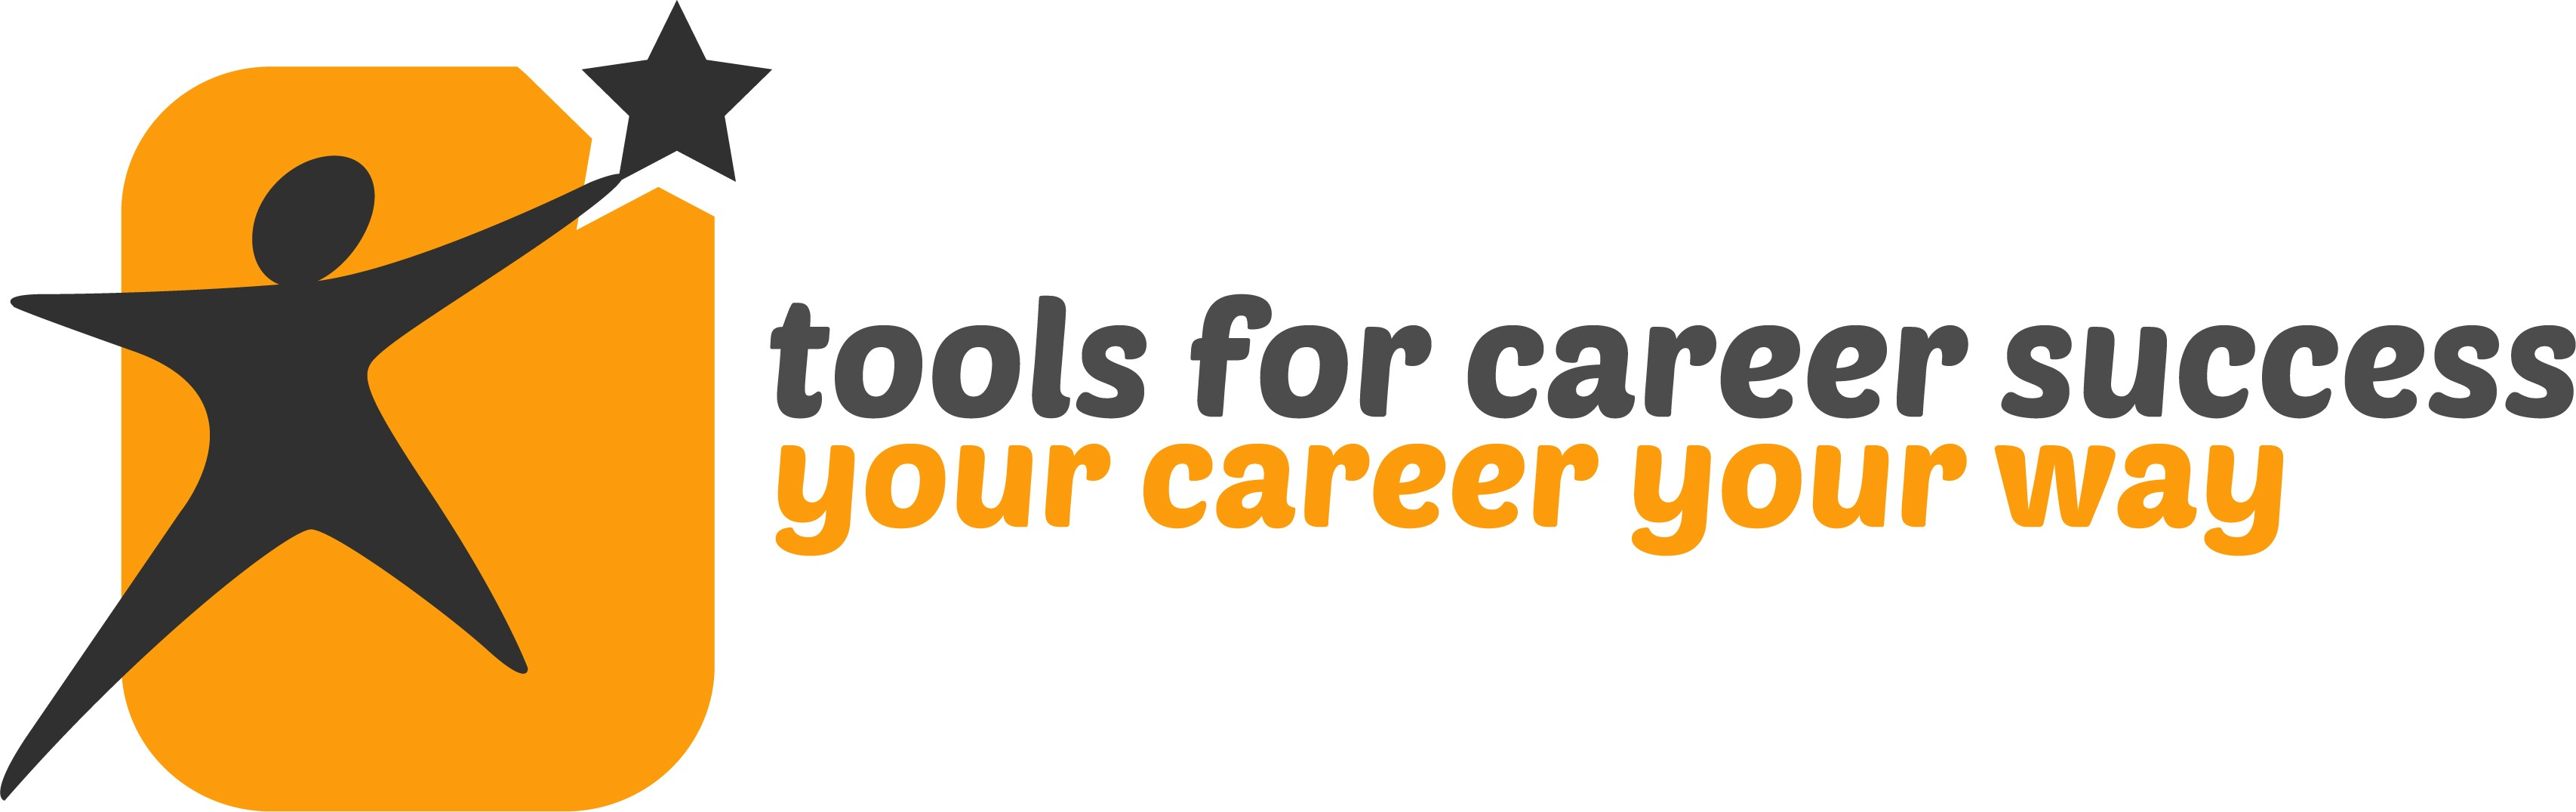 Tools for Career Success